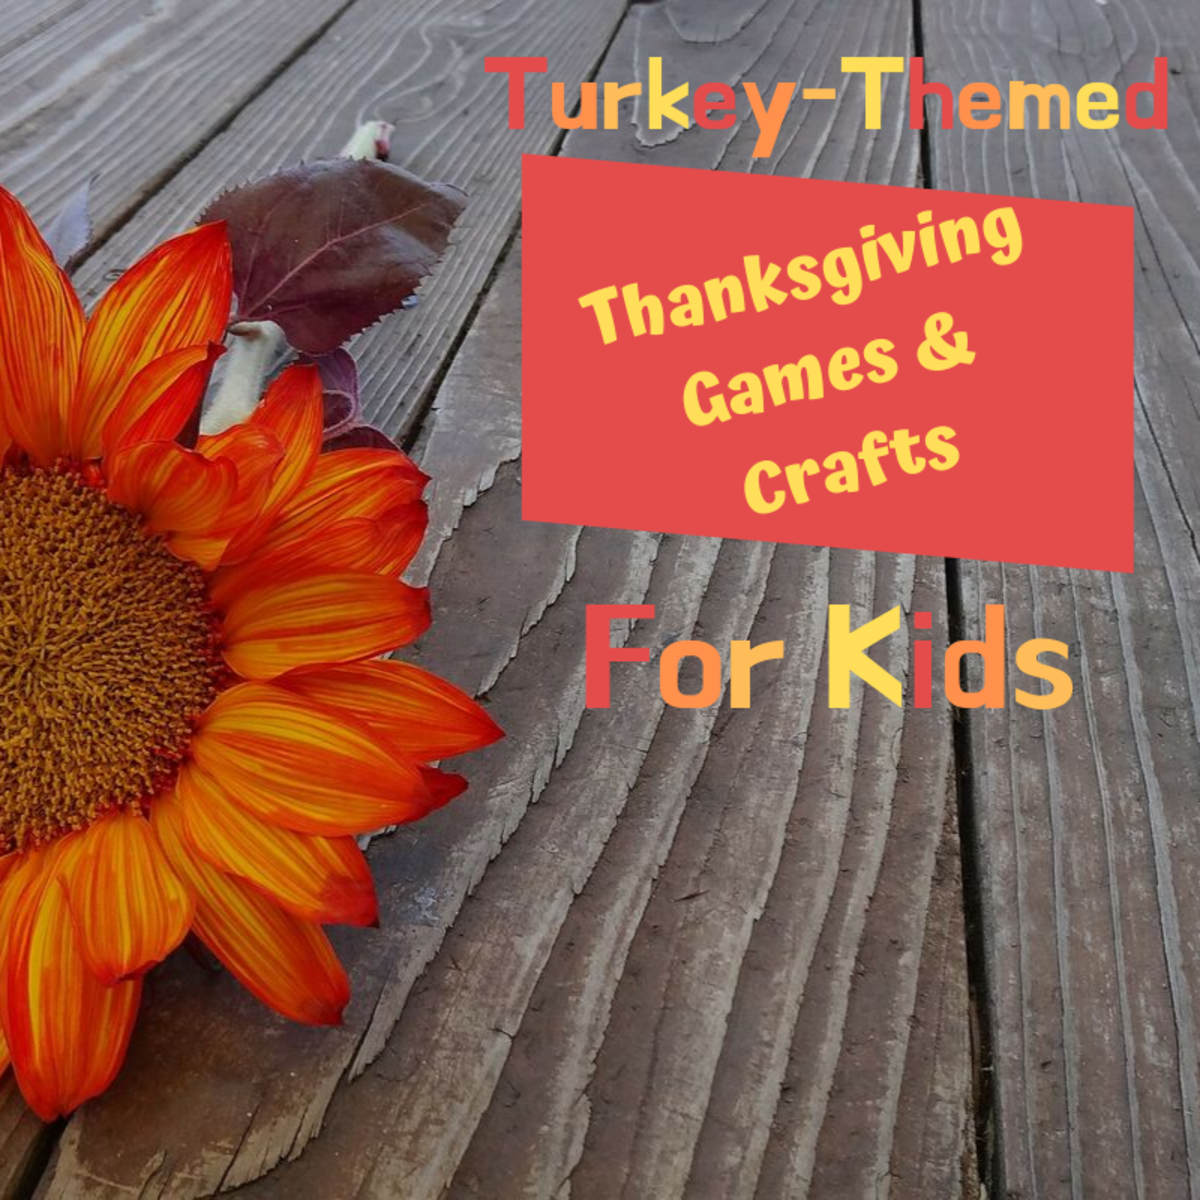 Turkey-Themed Thanksgiving Craft and Game Ideas for Kids